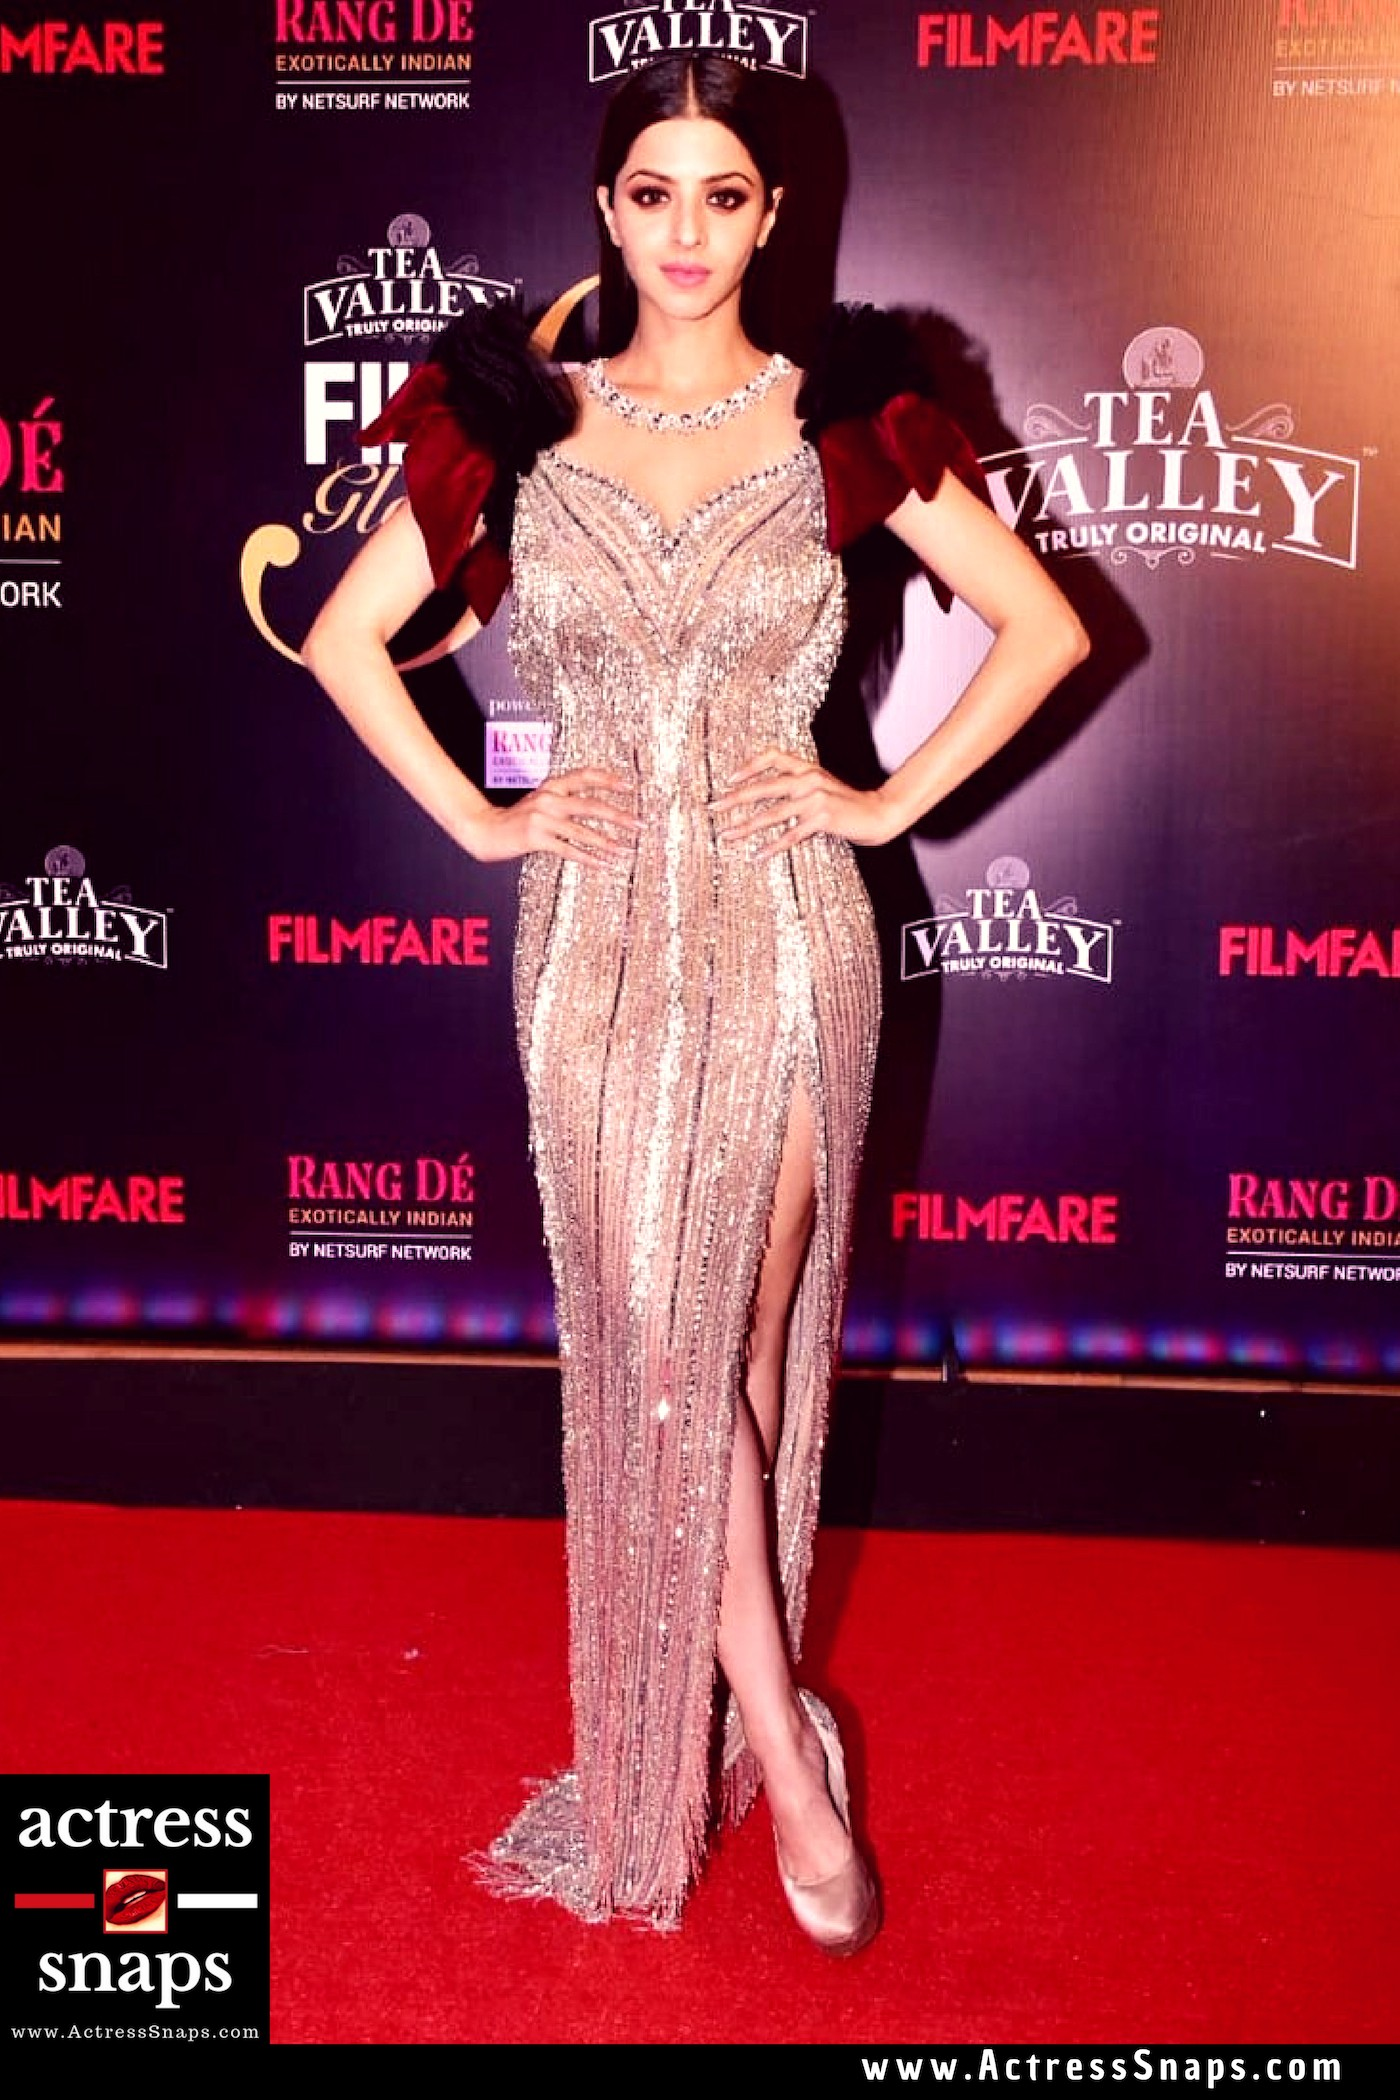 Sexy Vedhika Photos from filmfare Event - Sexy Actress Pictures | Hot Actress Pictures - ActressSnaps.com